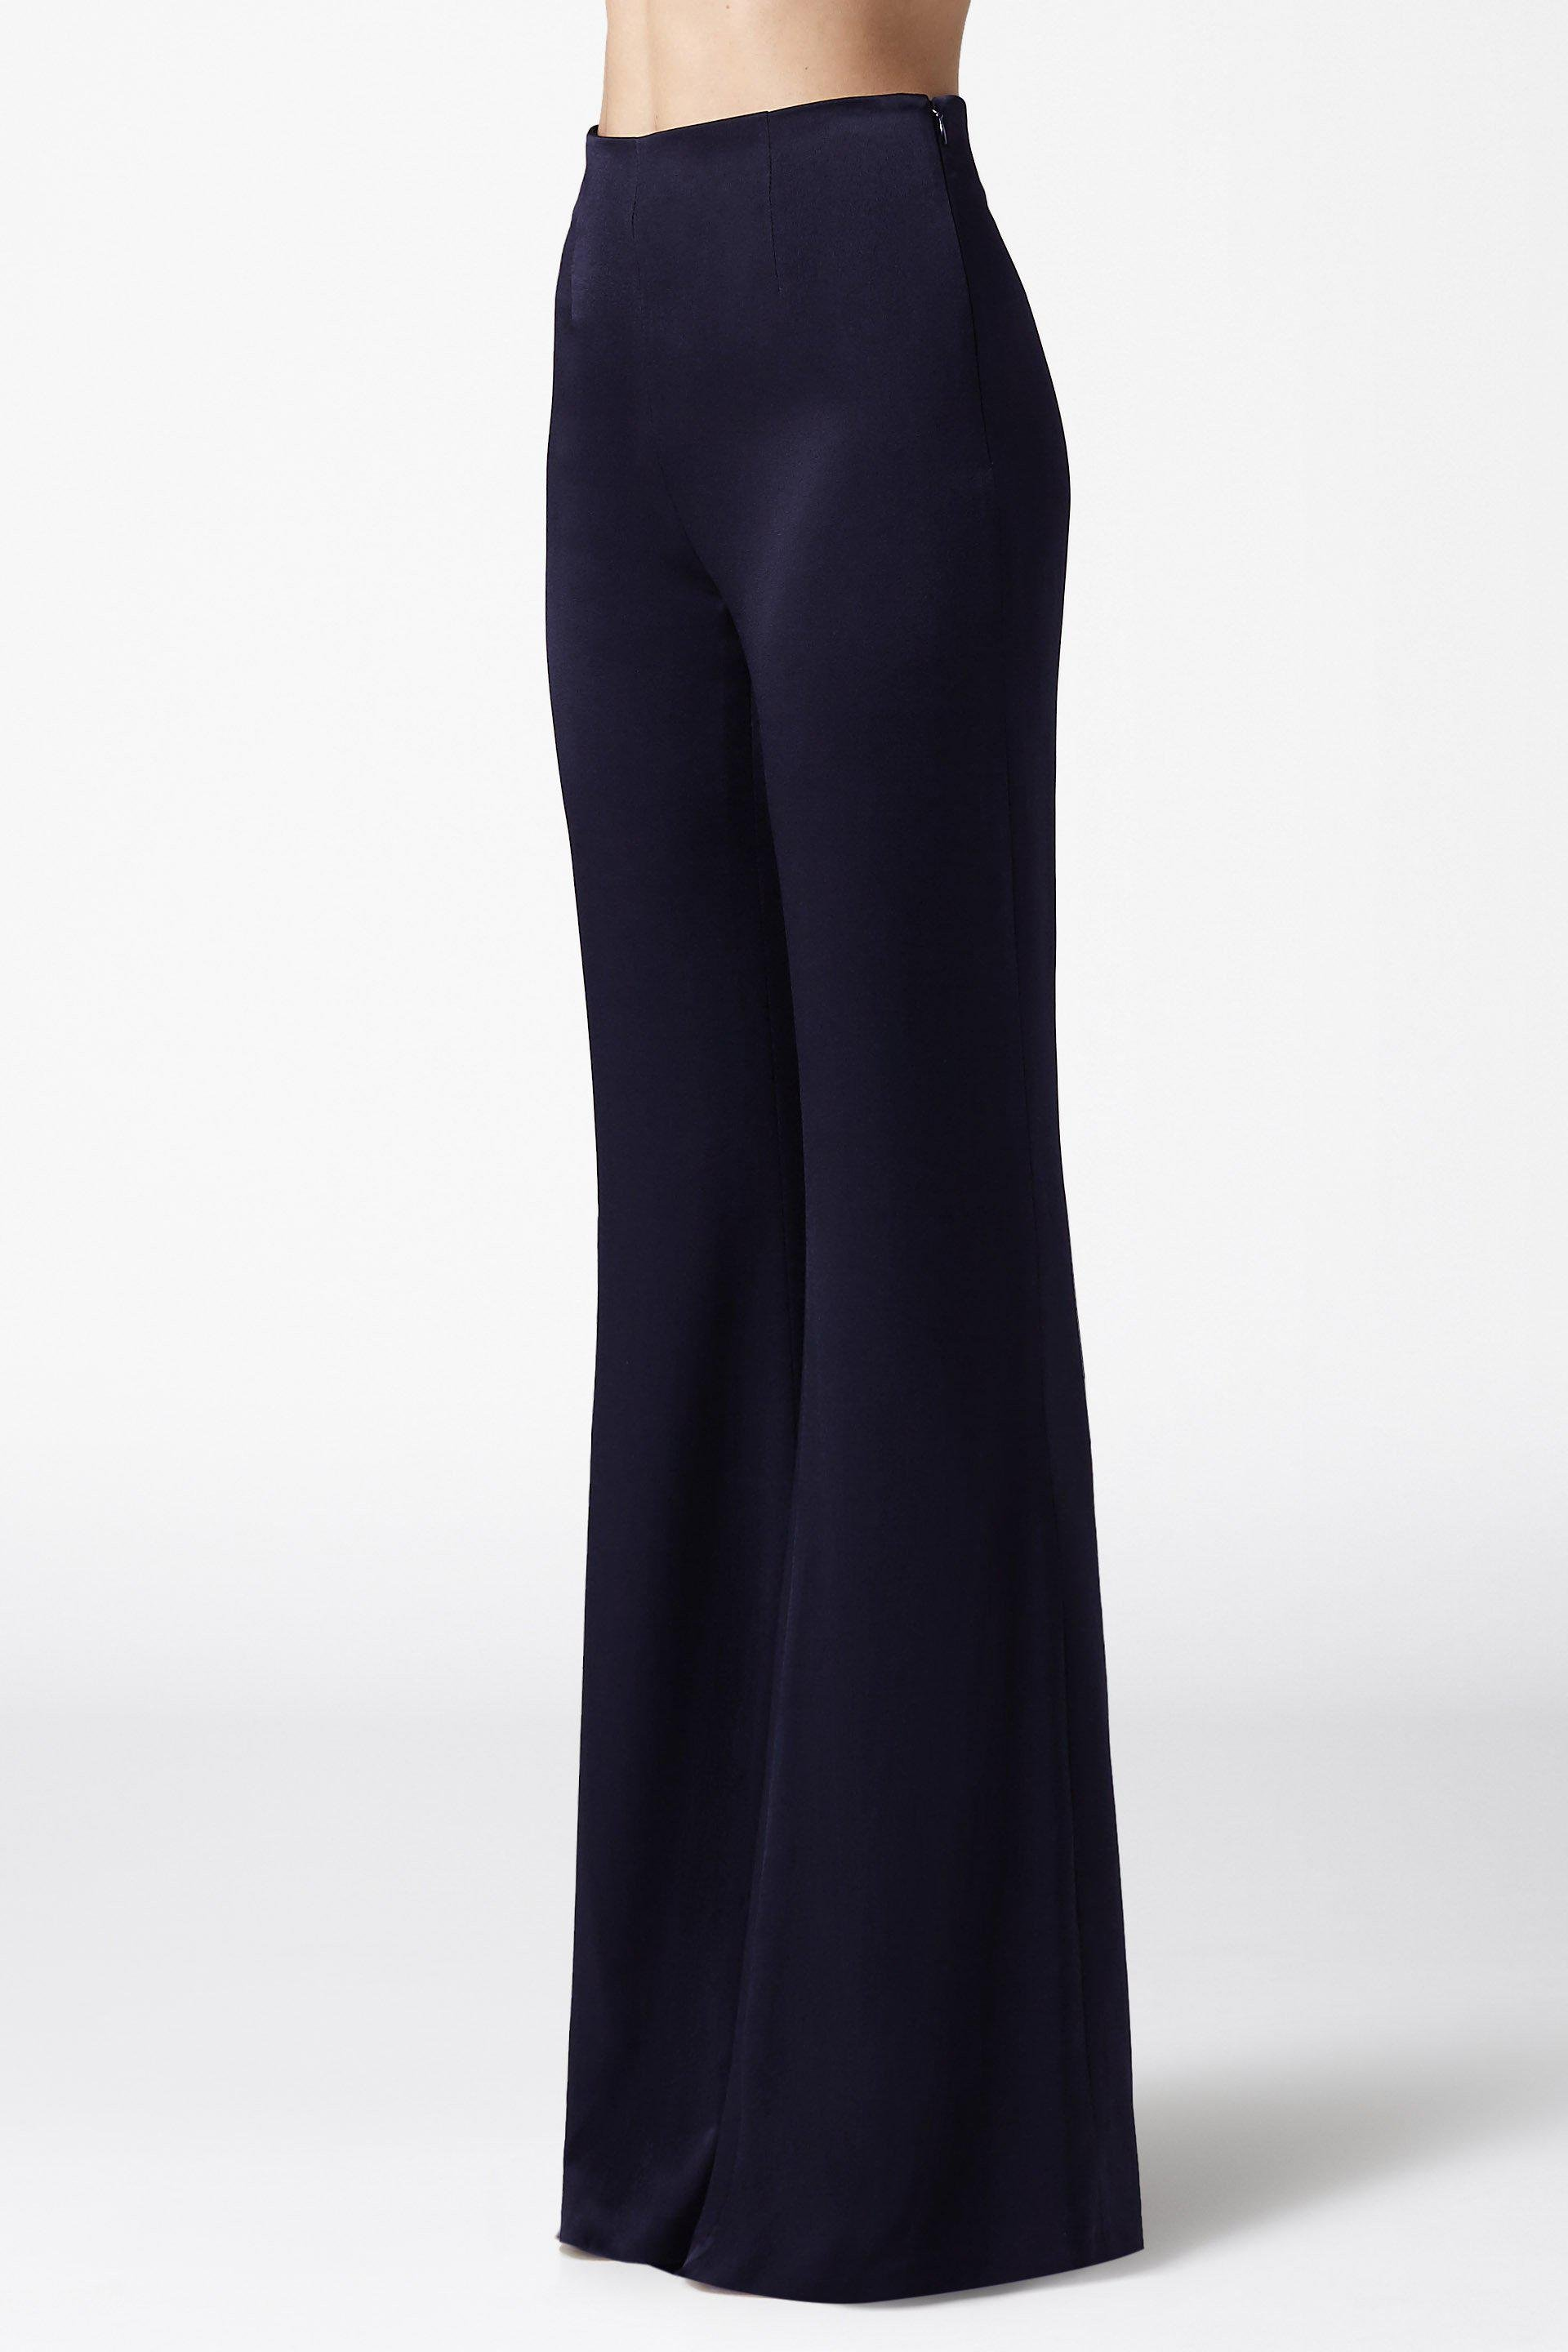 High Waisted Satin Trousers - Midnight 1